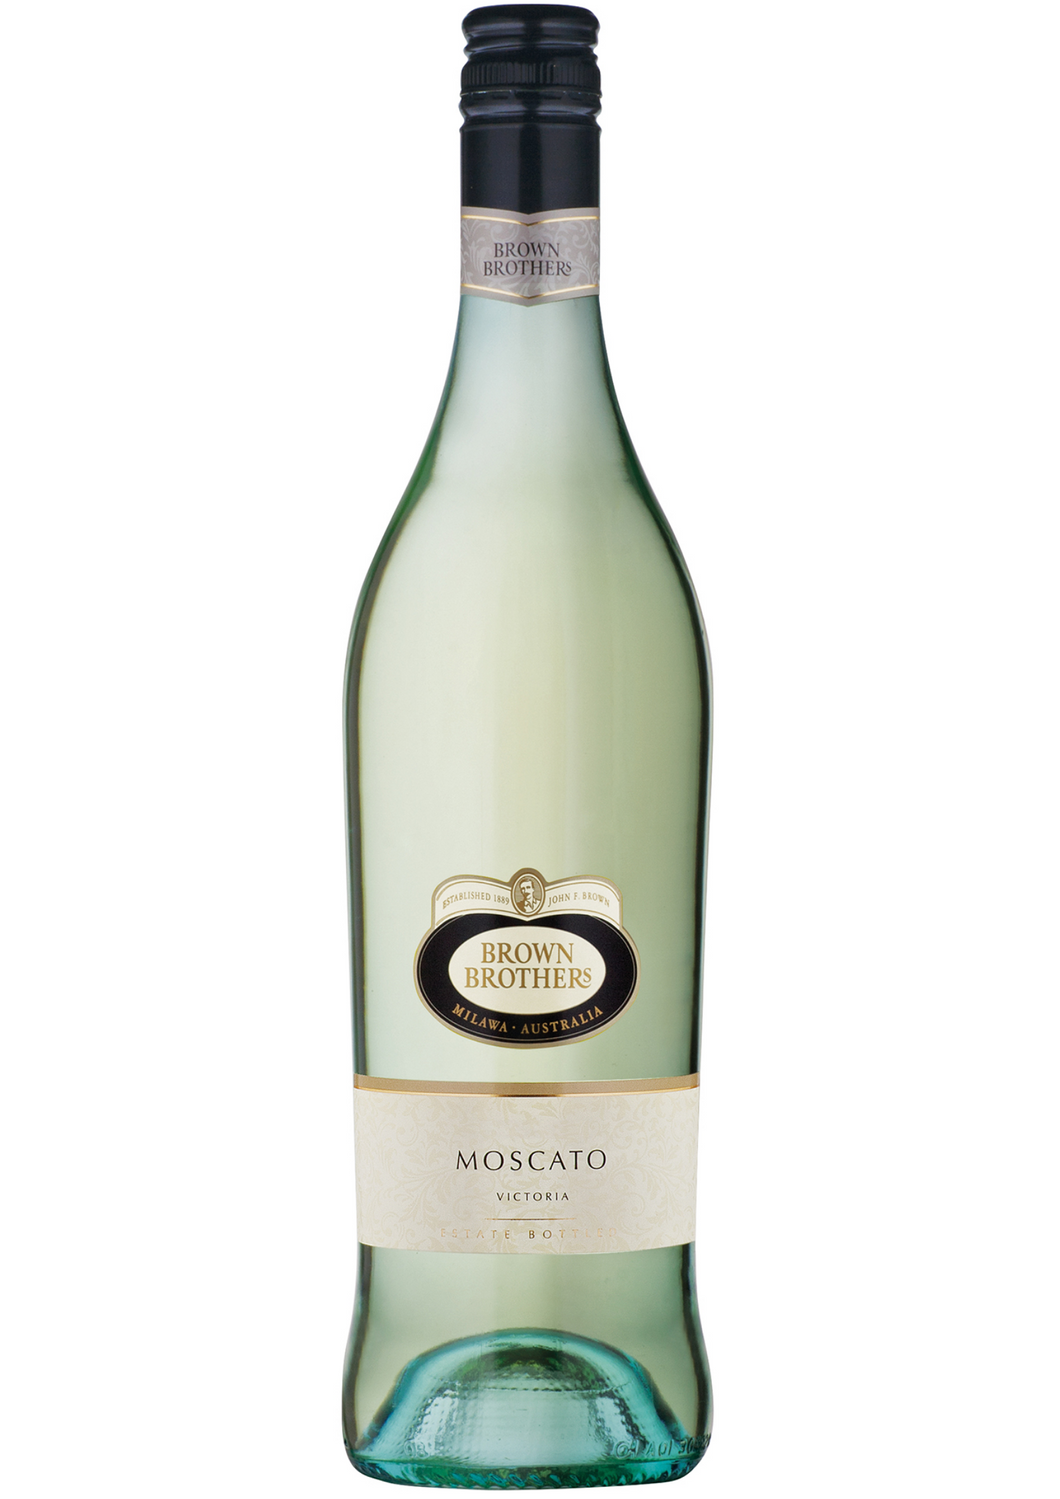 2019 MOSCATO VICTORIA, BROWN BROTHERS - Vineonline